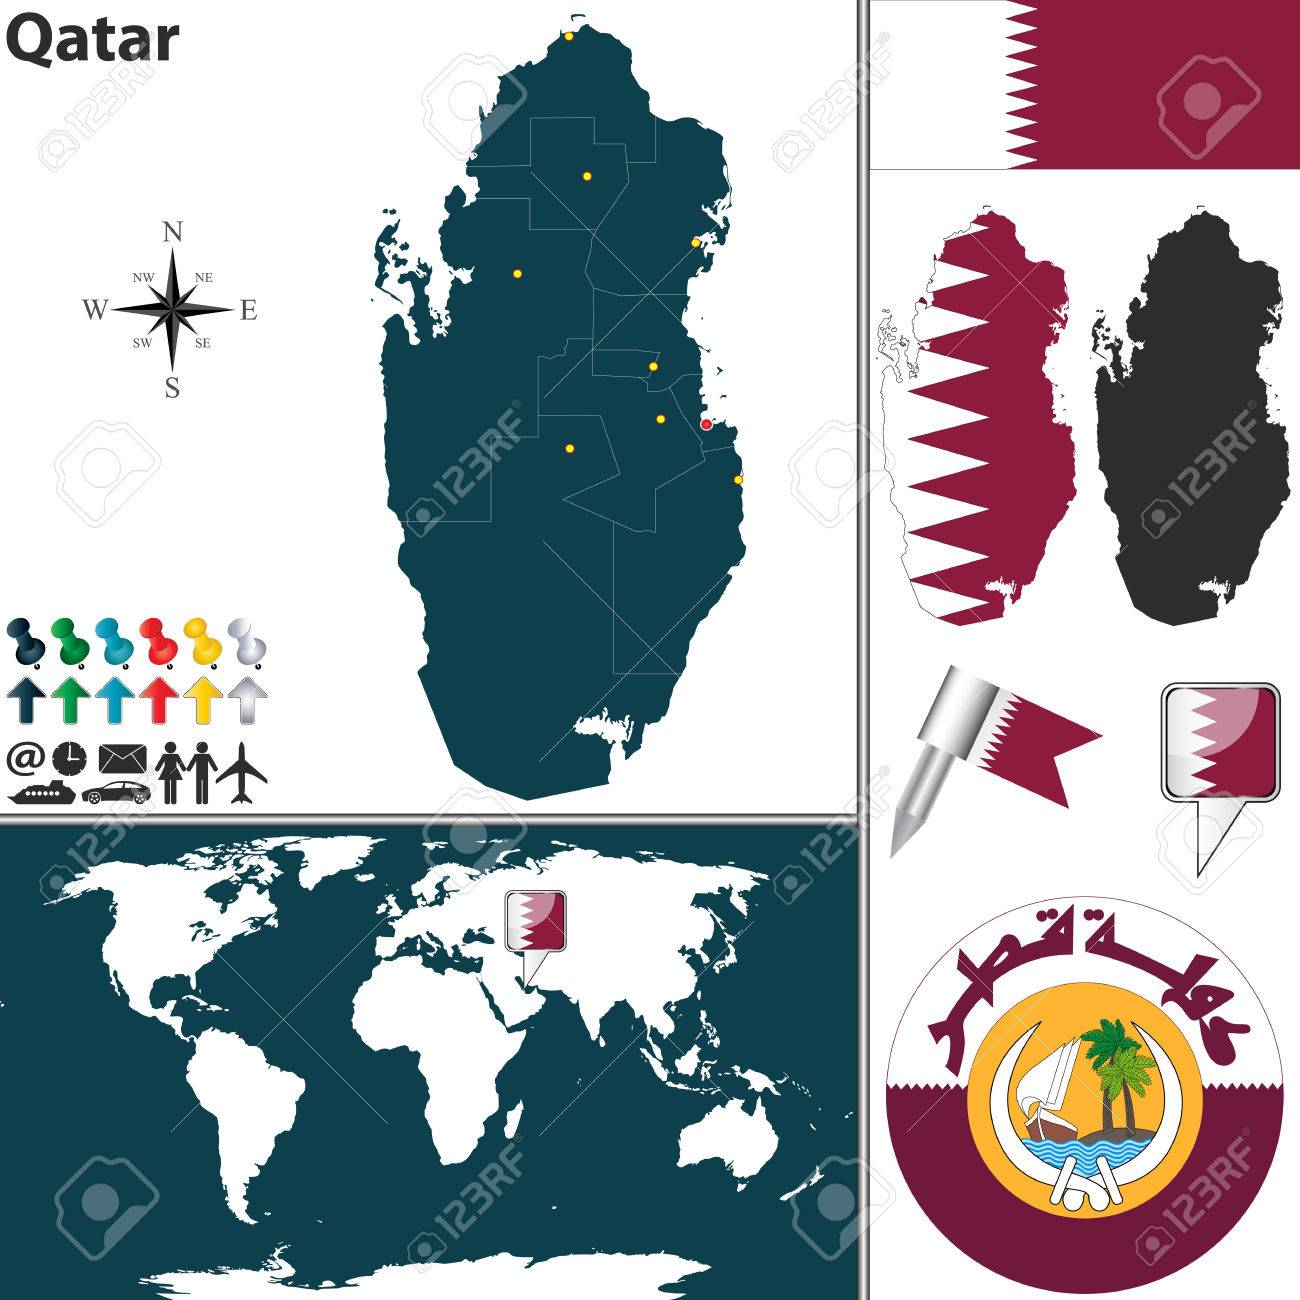 Where Qatar Is Located In World Map.Map Of Qatar With Regions Coat Of Arms And Location On World